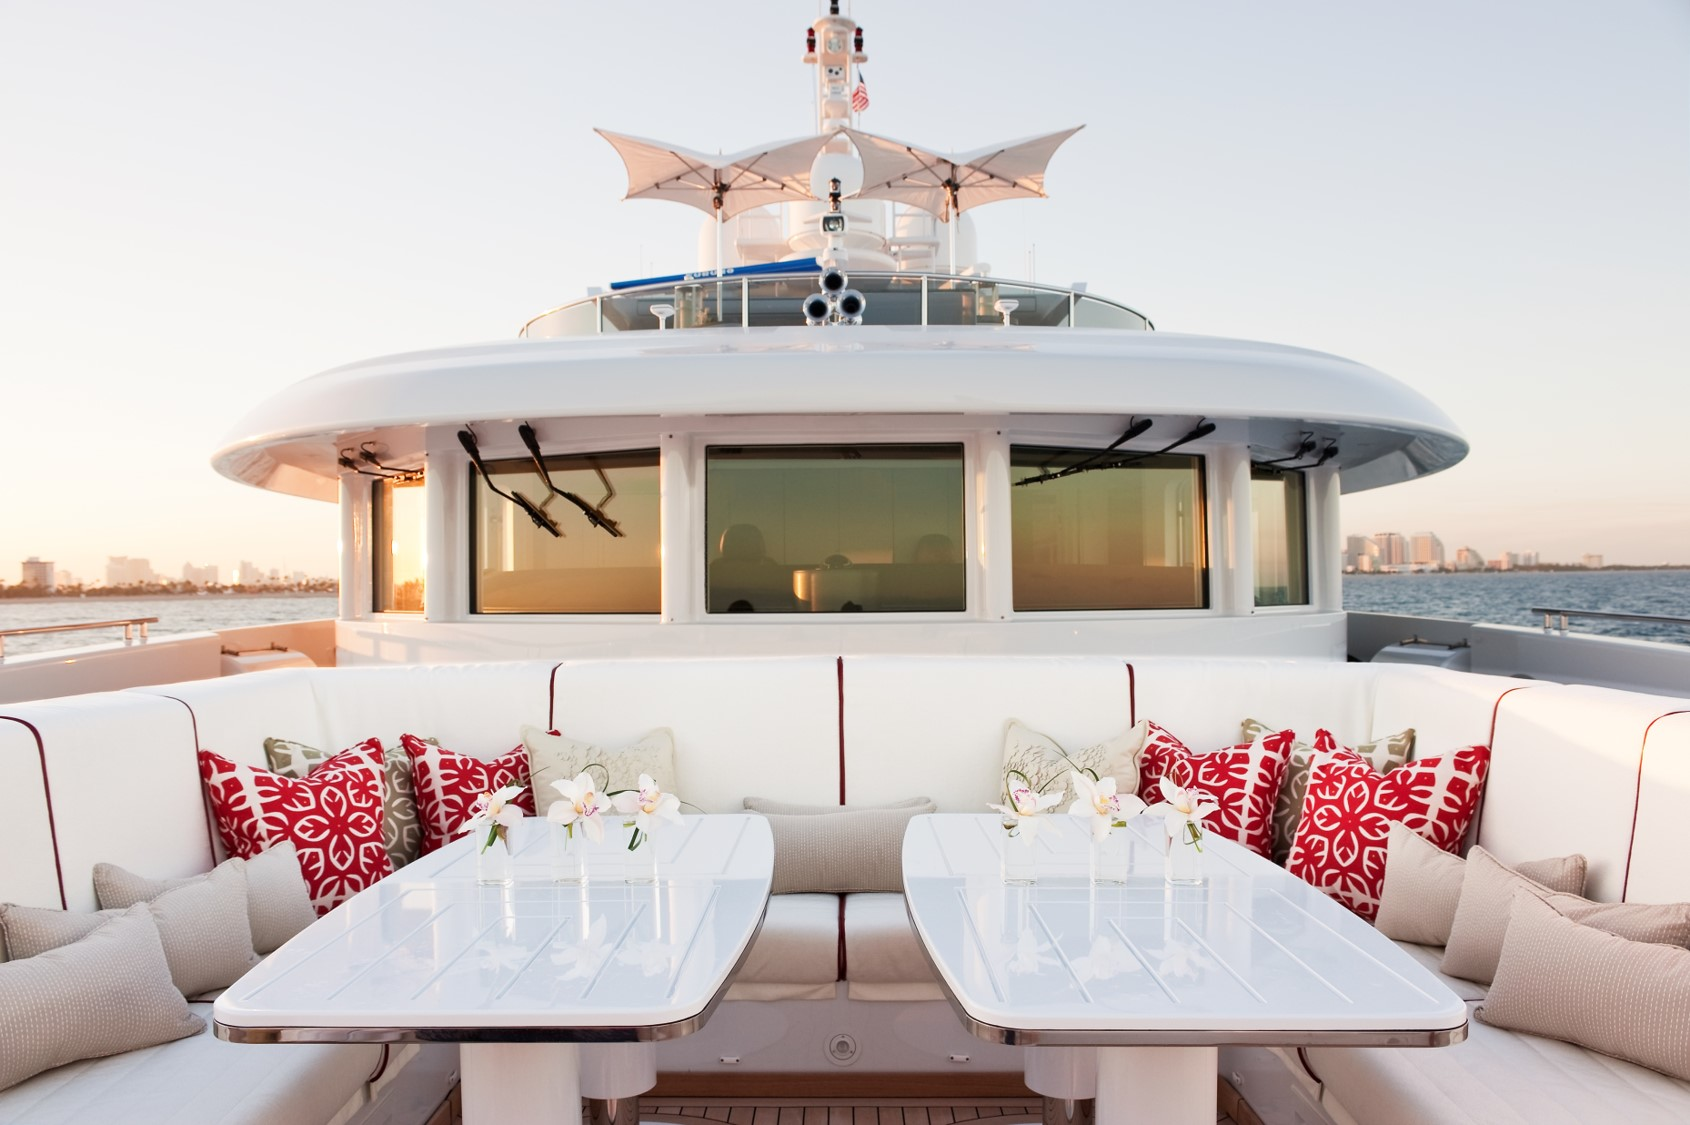 Designing the interiors of a multi-million pound yacht for the super-elite